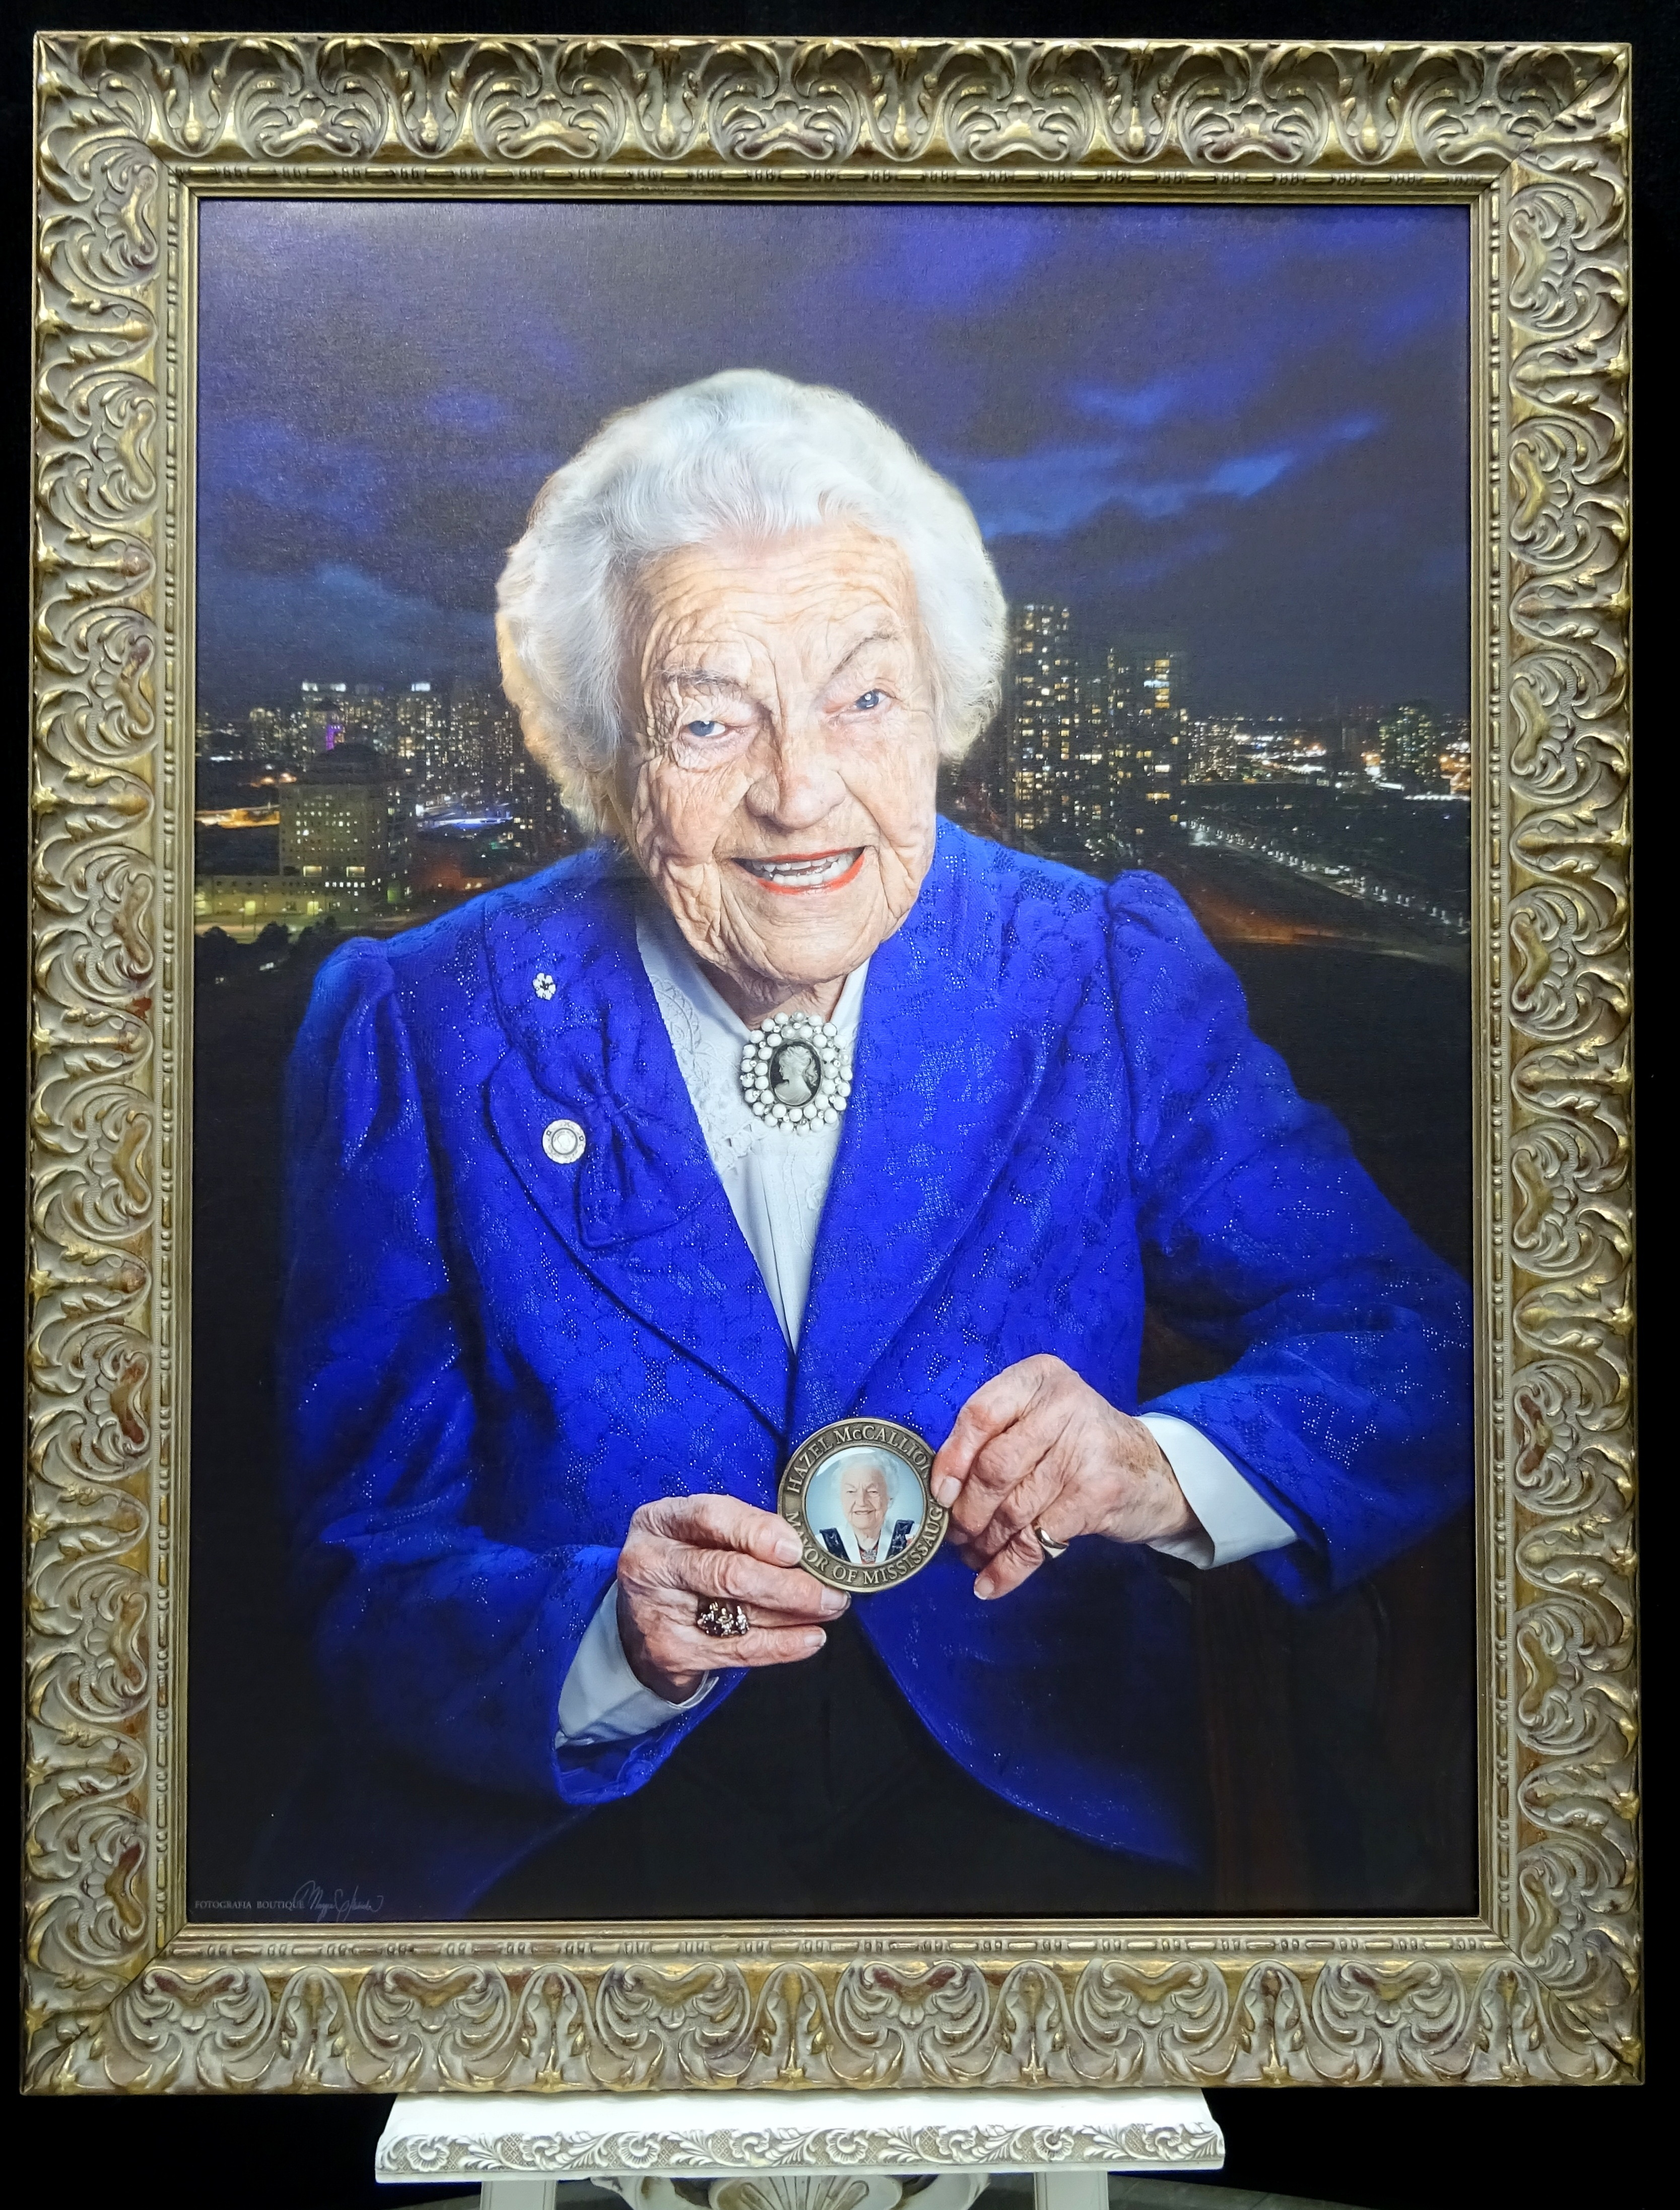 Portrait of Hazel McCallion in Blue by Maggie Habieda of Fotografia Boutique, on display at Hazel McCallion Hall, Vic Johnston C.C. 14 Feb. 2017